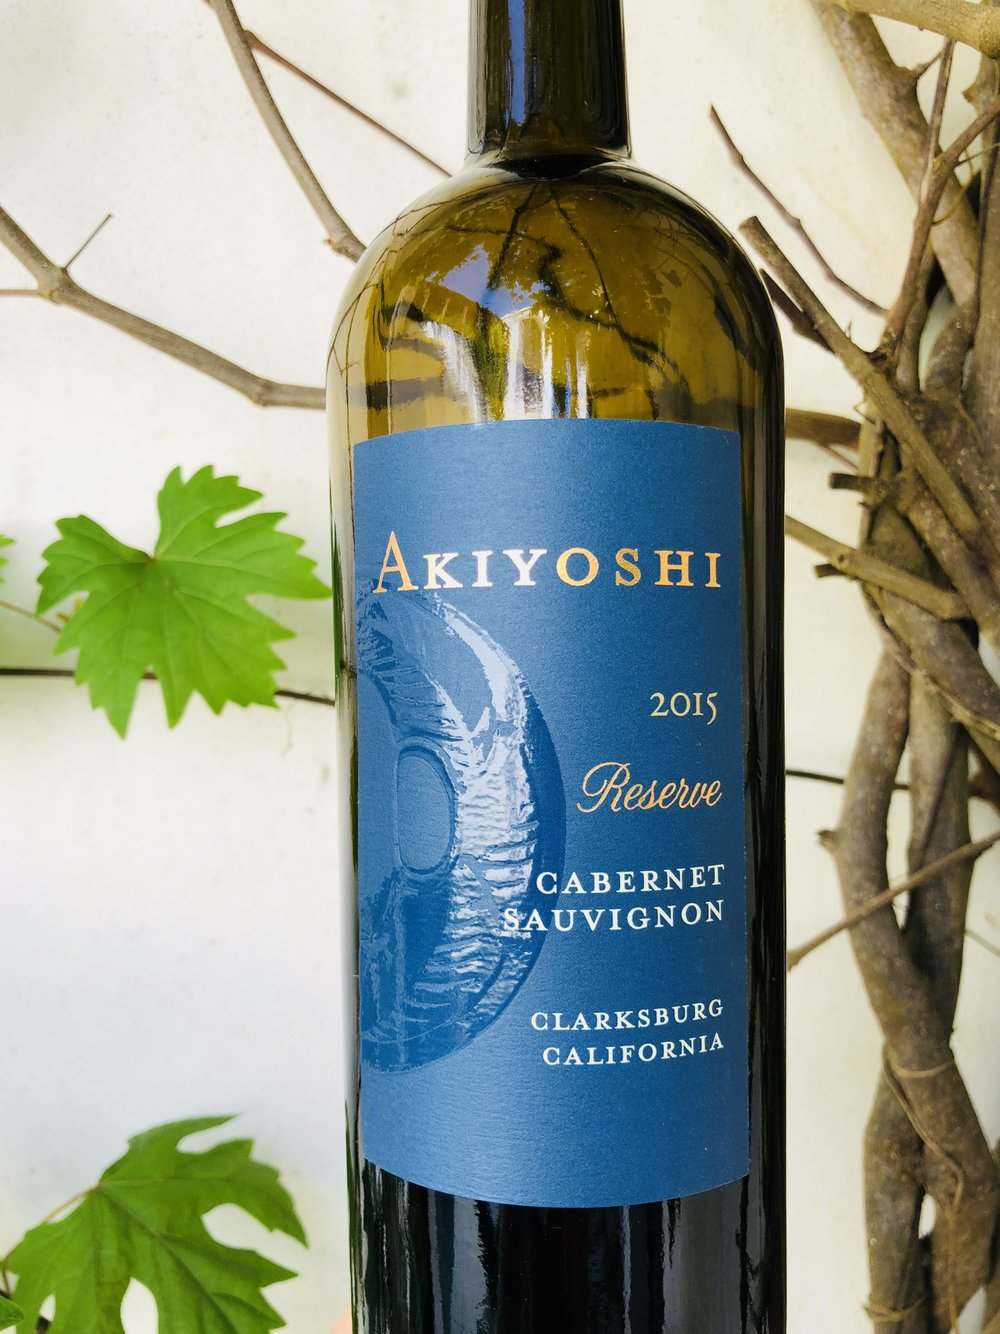 - David Akiyoshi Reserve Cabernet Sauvignon Clarksburg 2015 is a fruitier (think wild berry) cab than we prefer, although others may like it. We give it 2 out of 5 stars. We would not buy again.List $22 Angel Price $13